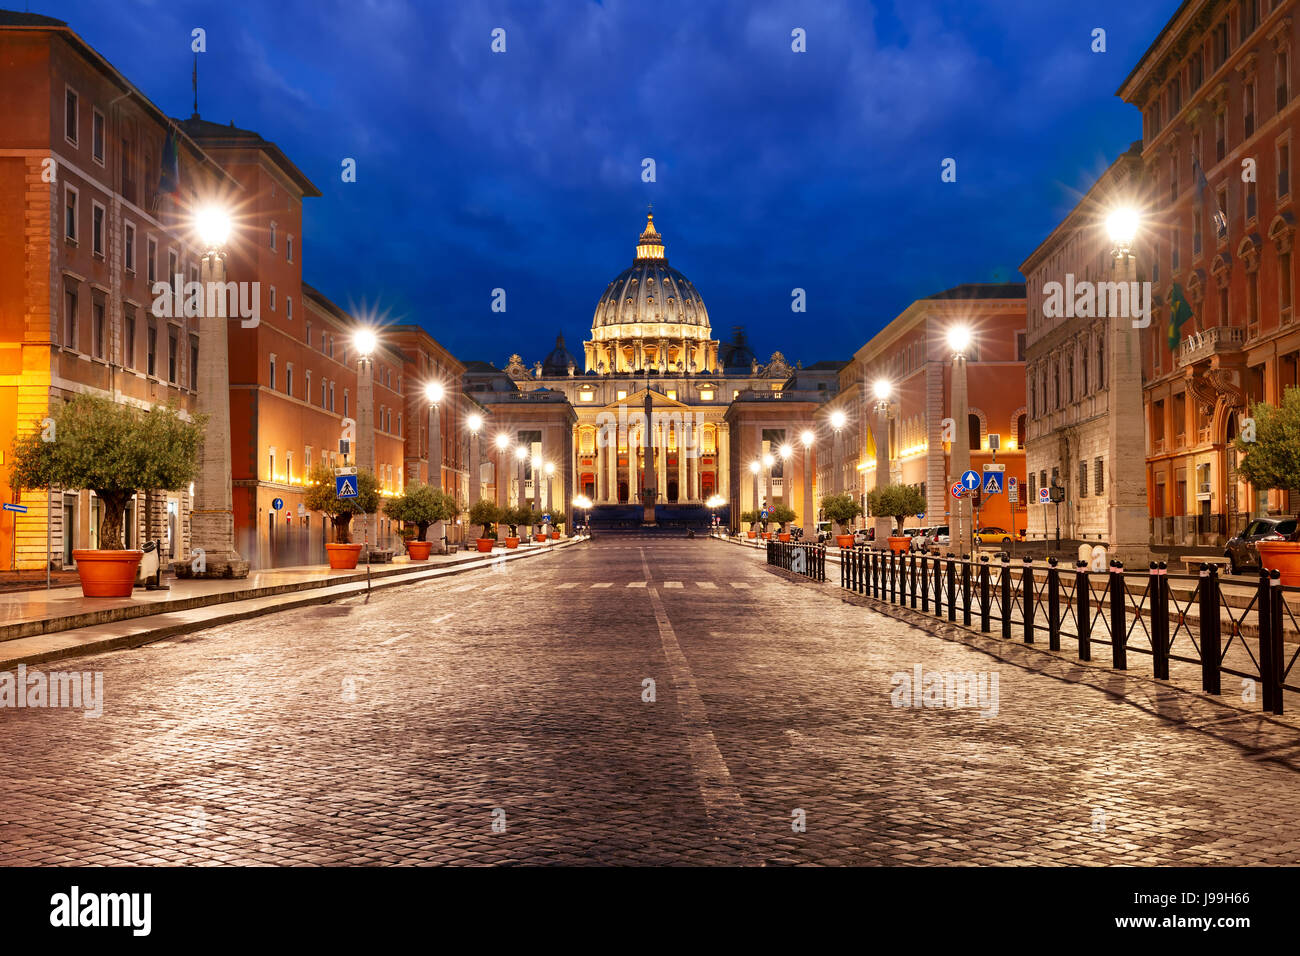 Saint Peter Cathedral in Rome, Vatican, Italy. - Stock Image